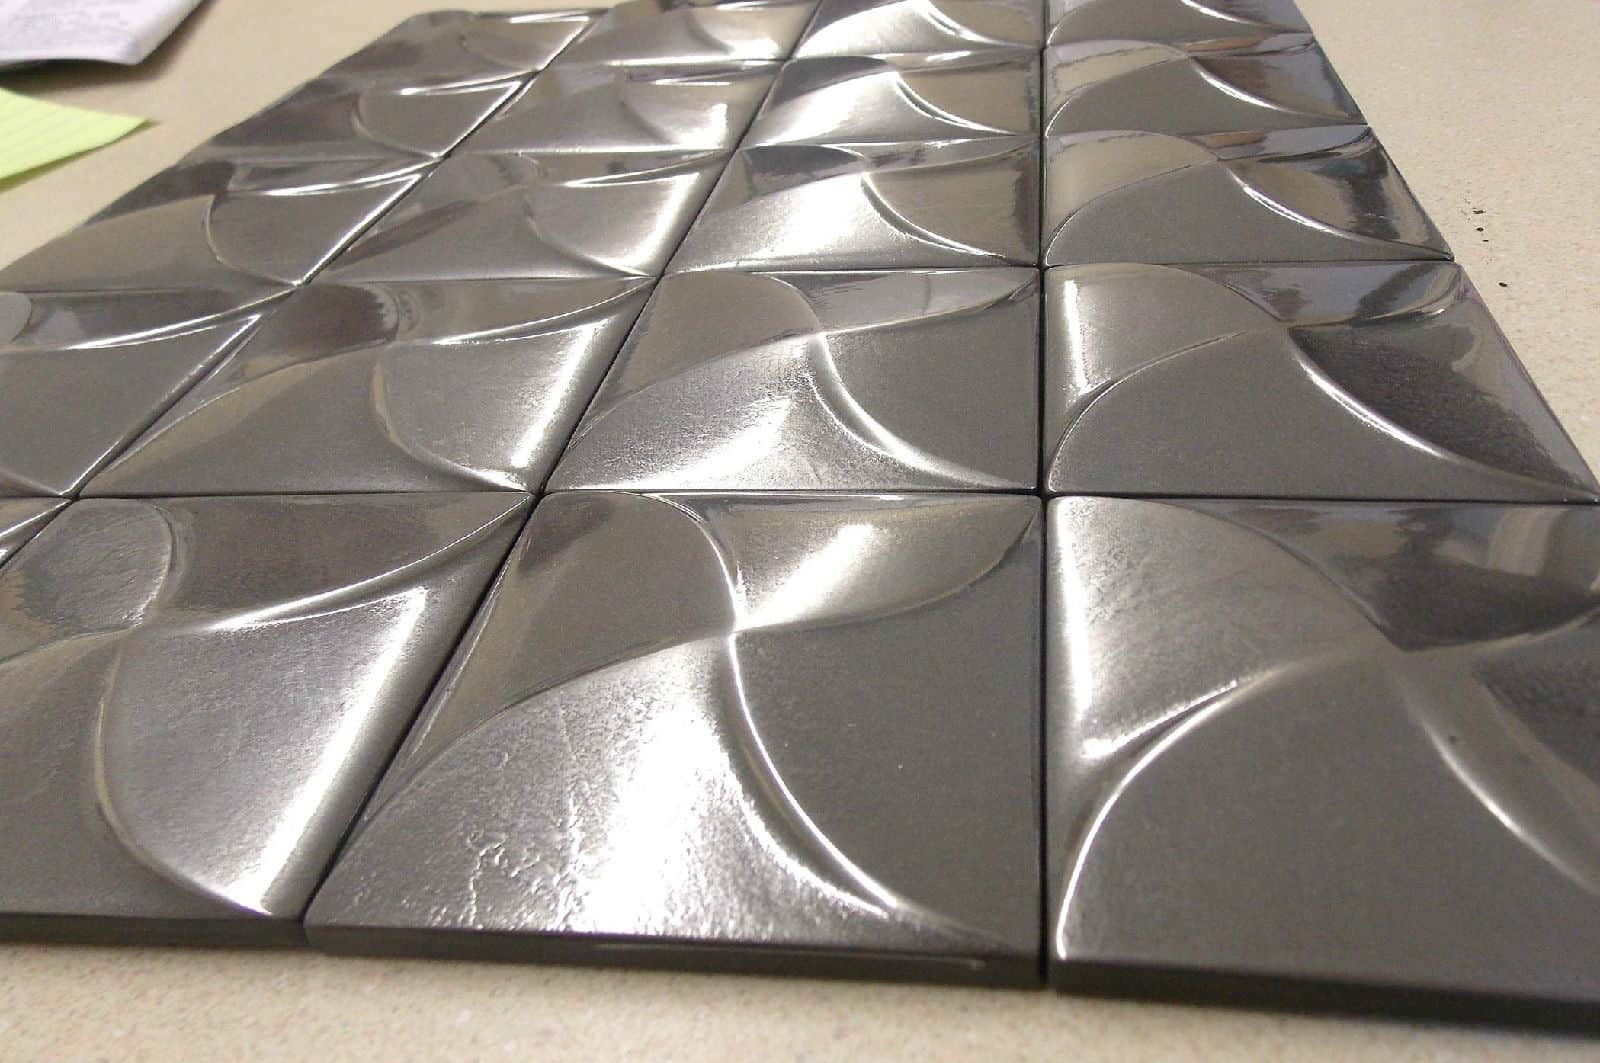 Marvelous Metal Wall Tiles Home Design